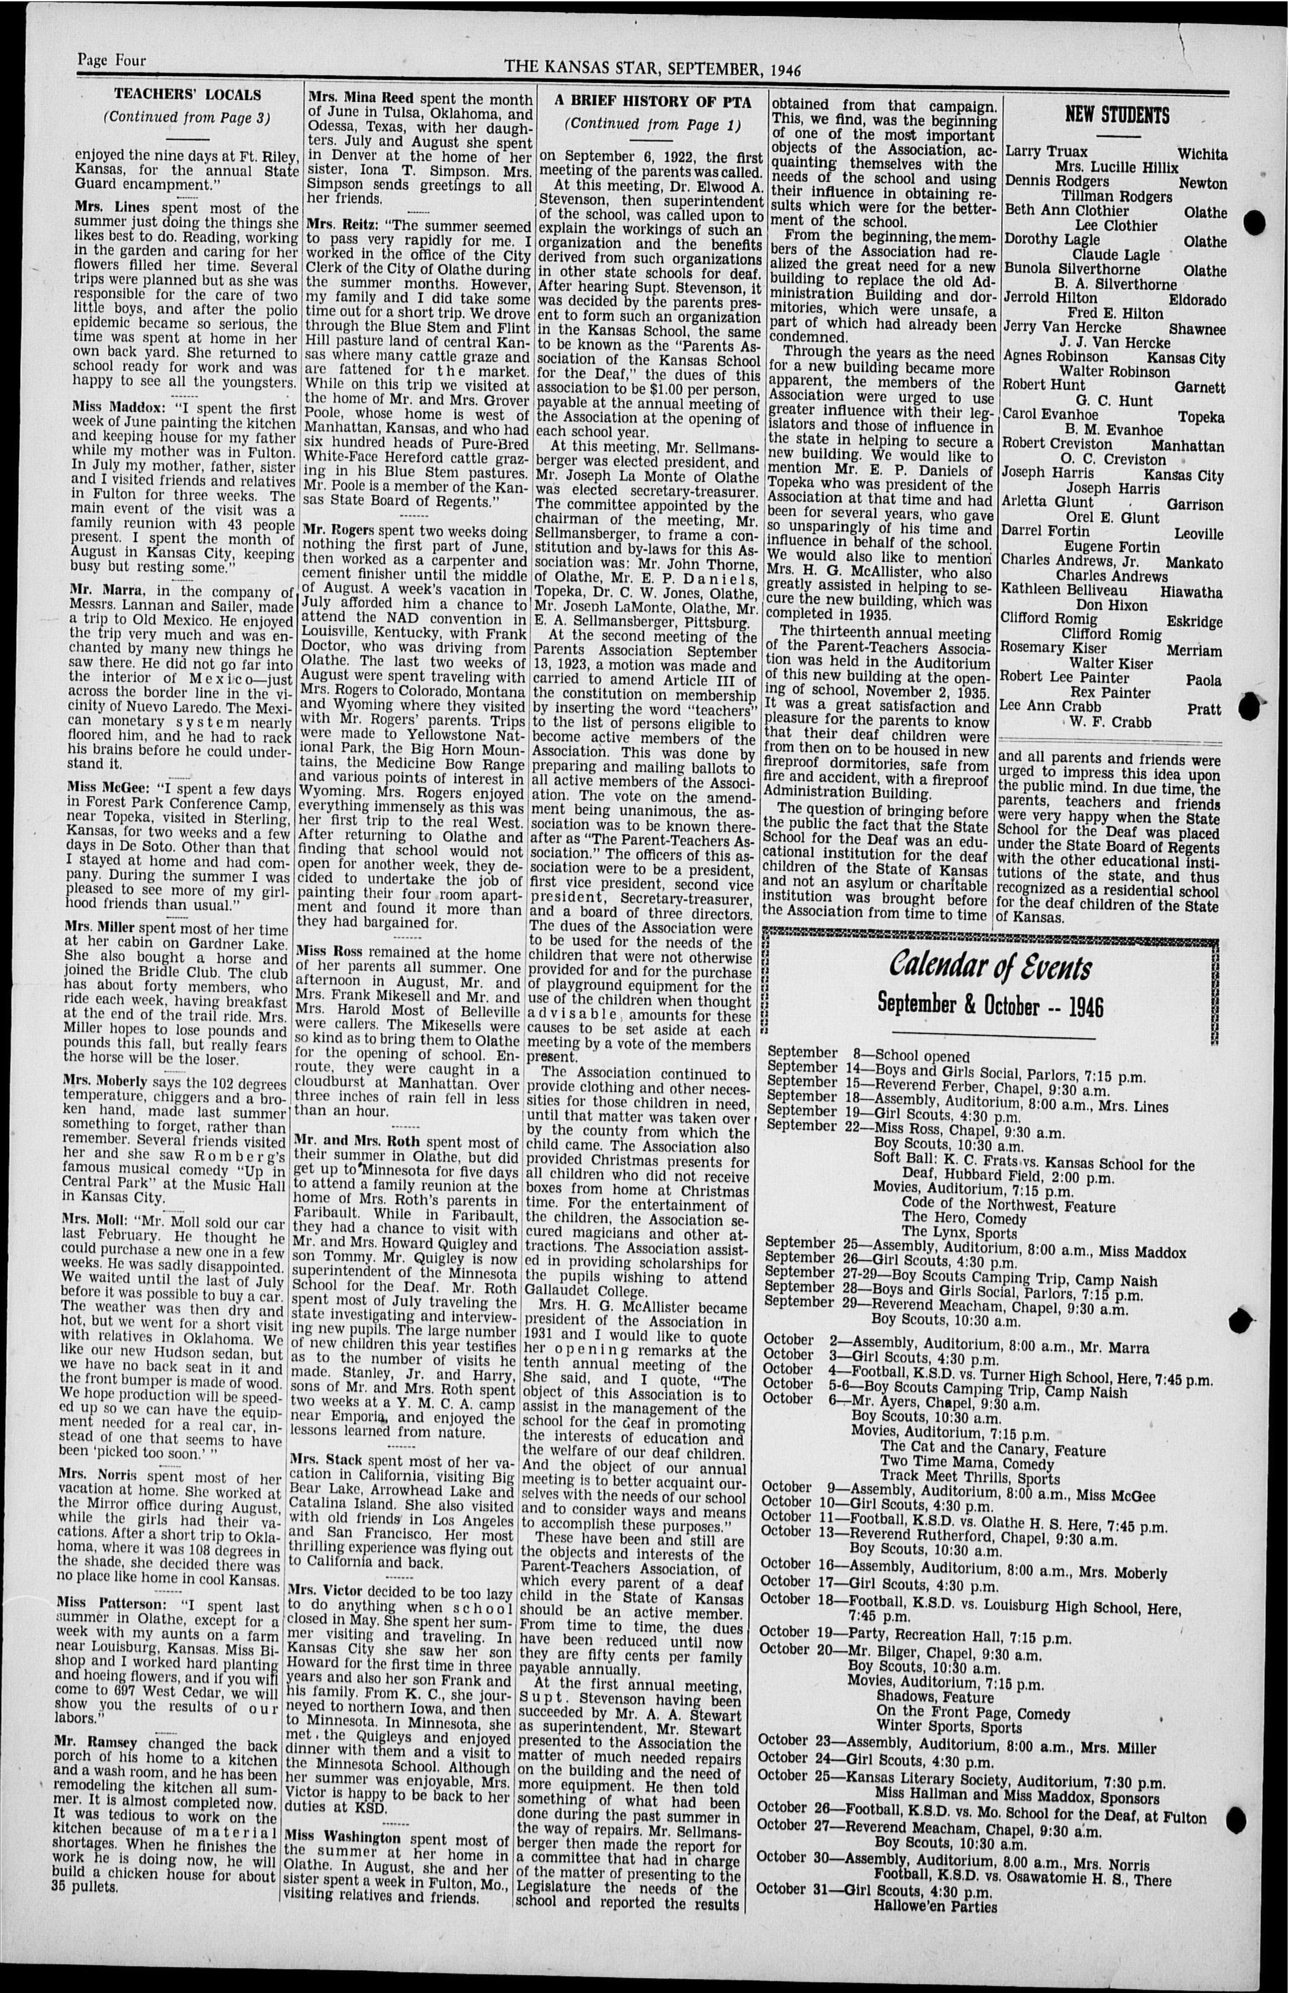 The Kansas Star, volume 61, number 1 - Back